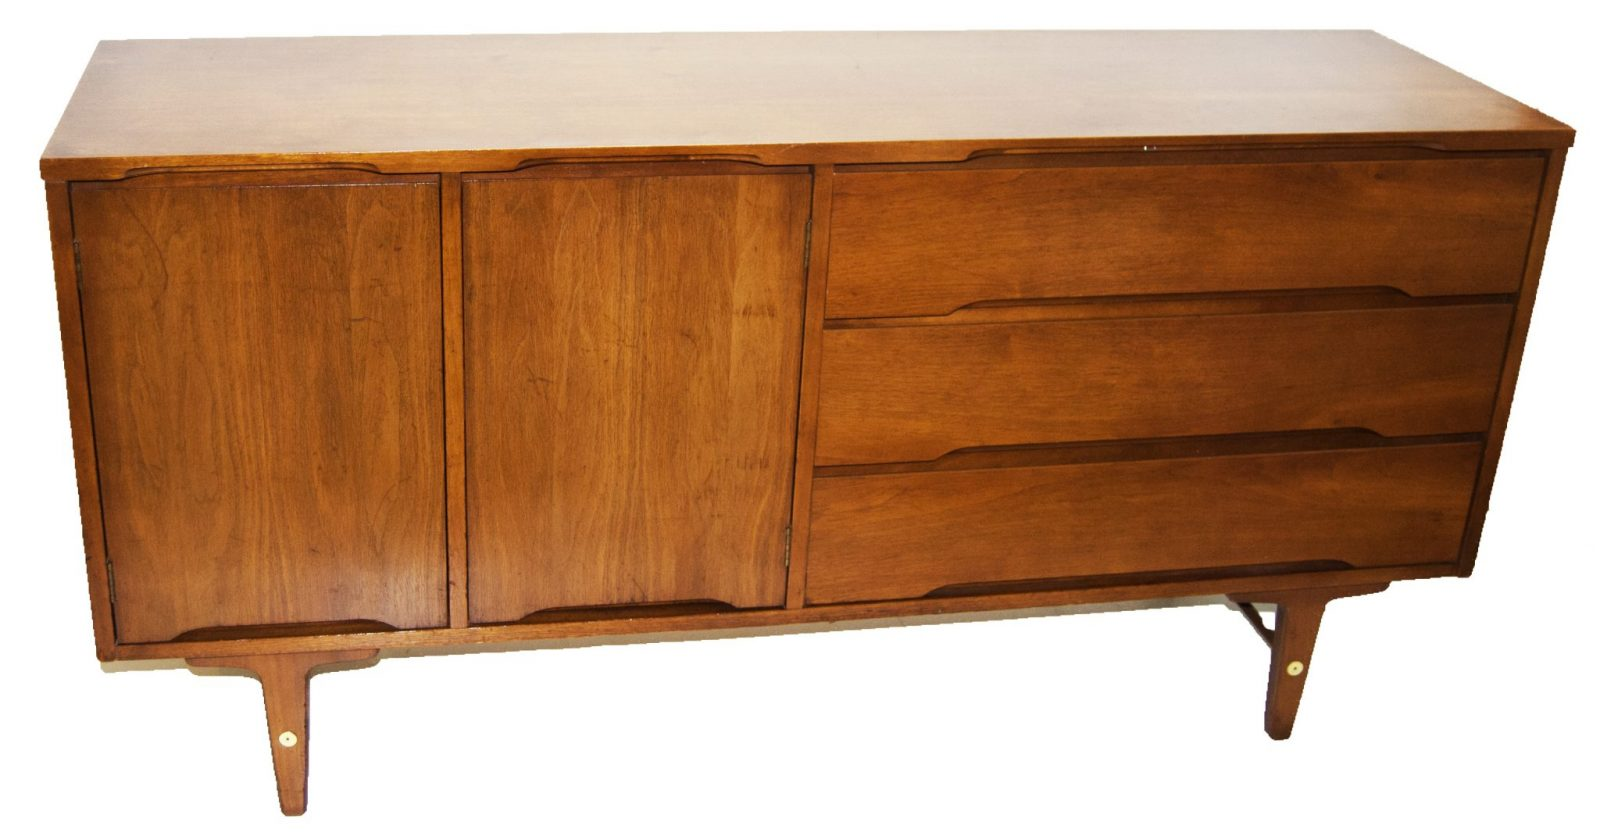 Danish mid century modern sideboard by stanley for Mid century modern danish furniture